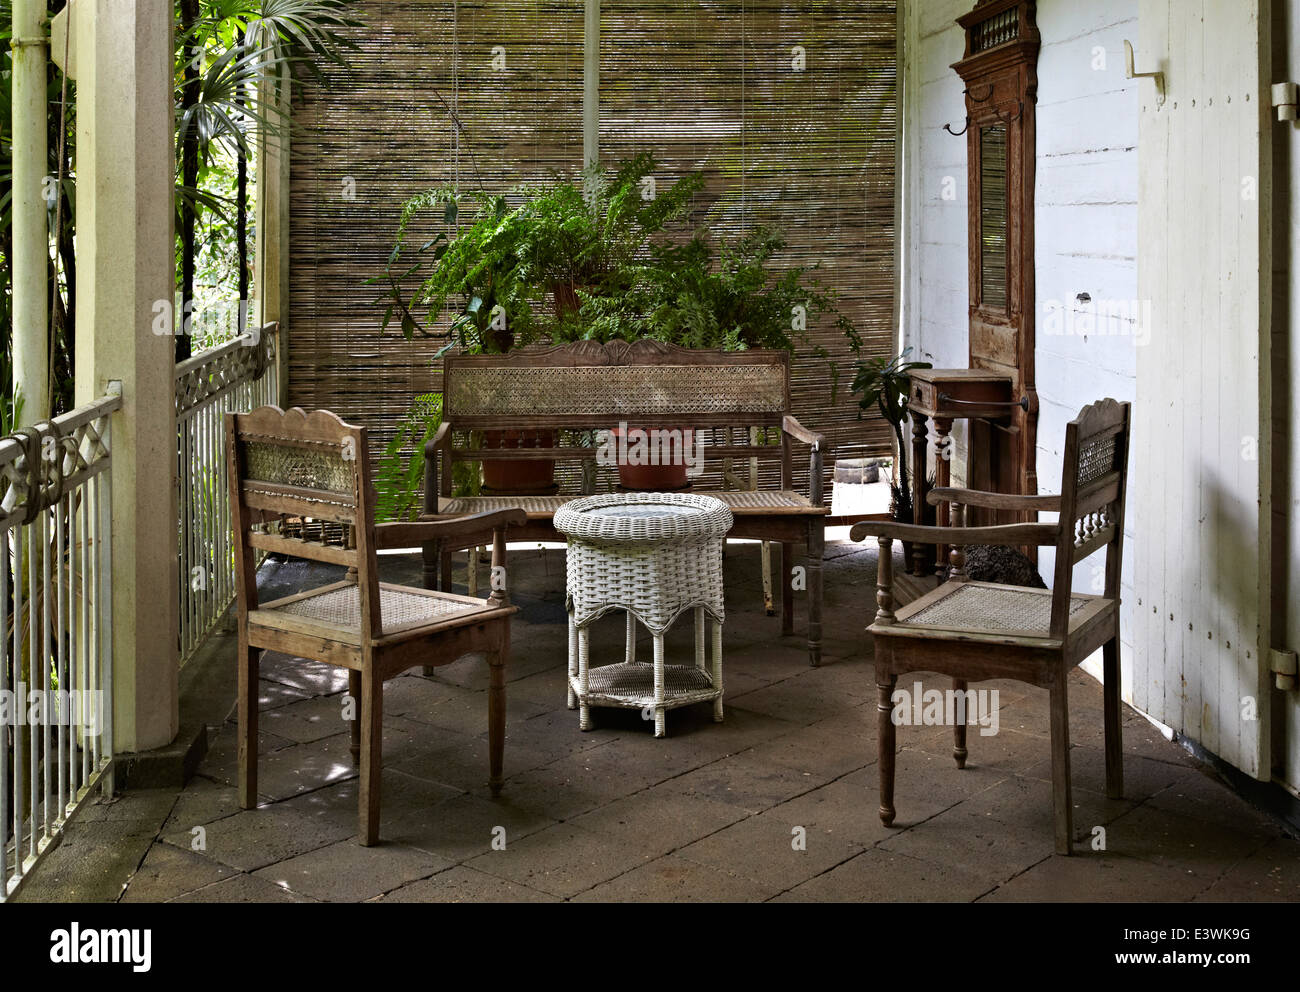 Awesome Stock Photo   Table And Chairs On Veranda Of La Maison Creole A French Colonial  House Also Known As Eureka Or House Of 109 Doors In Moka